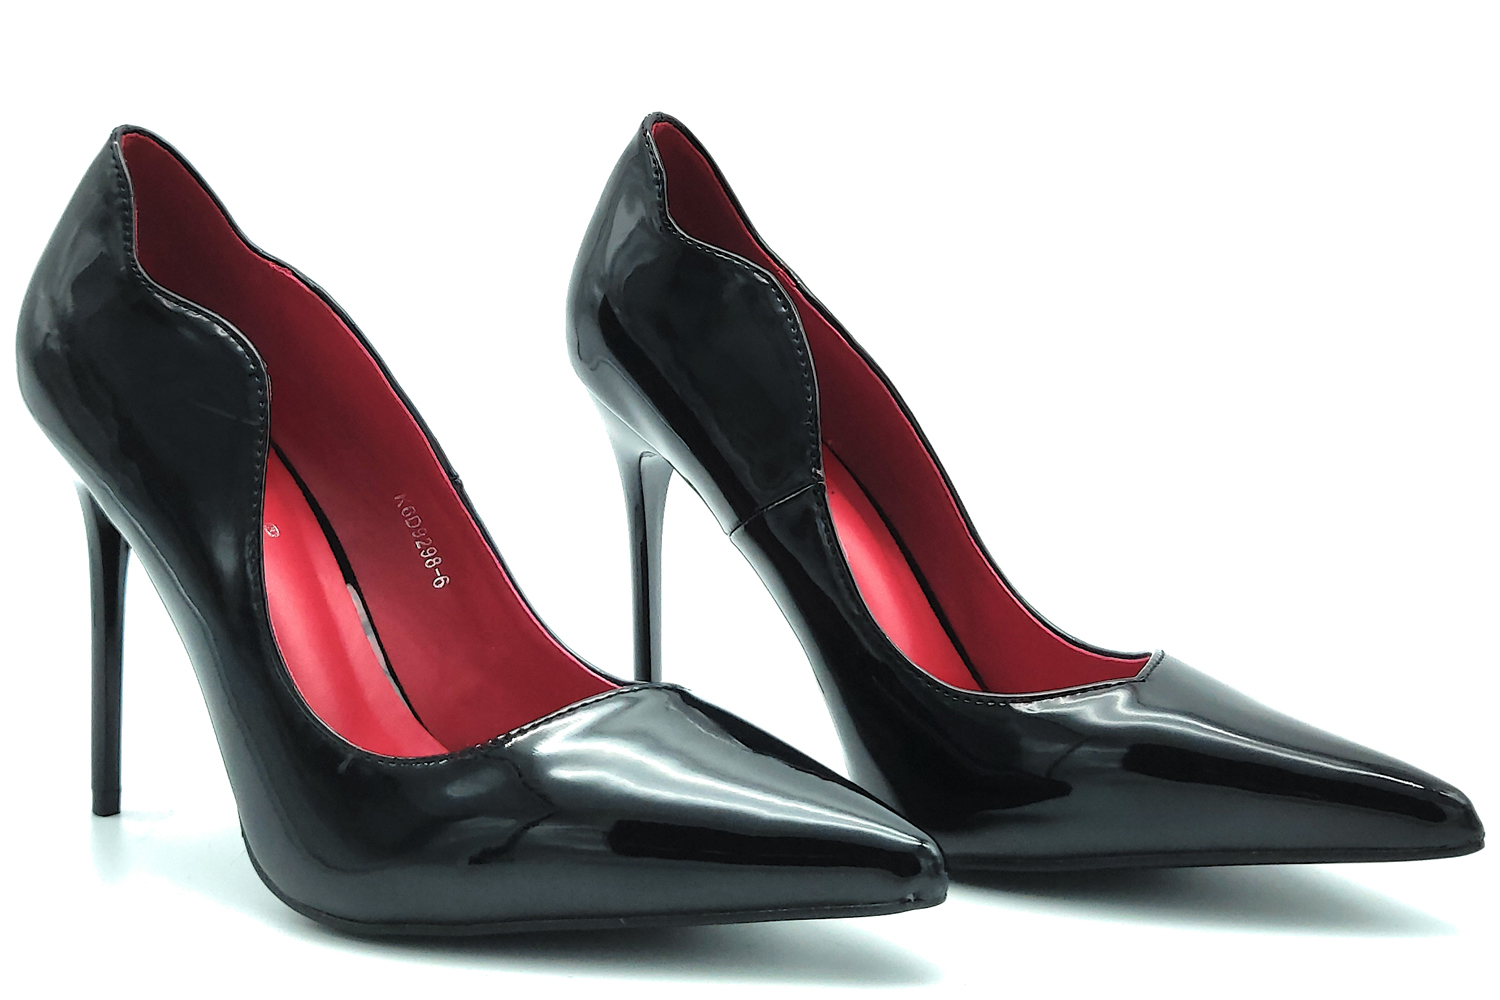 Decolte' woman paint in the evening the stylish black toe high-heel stiletto shoes